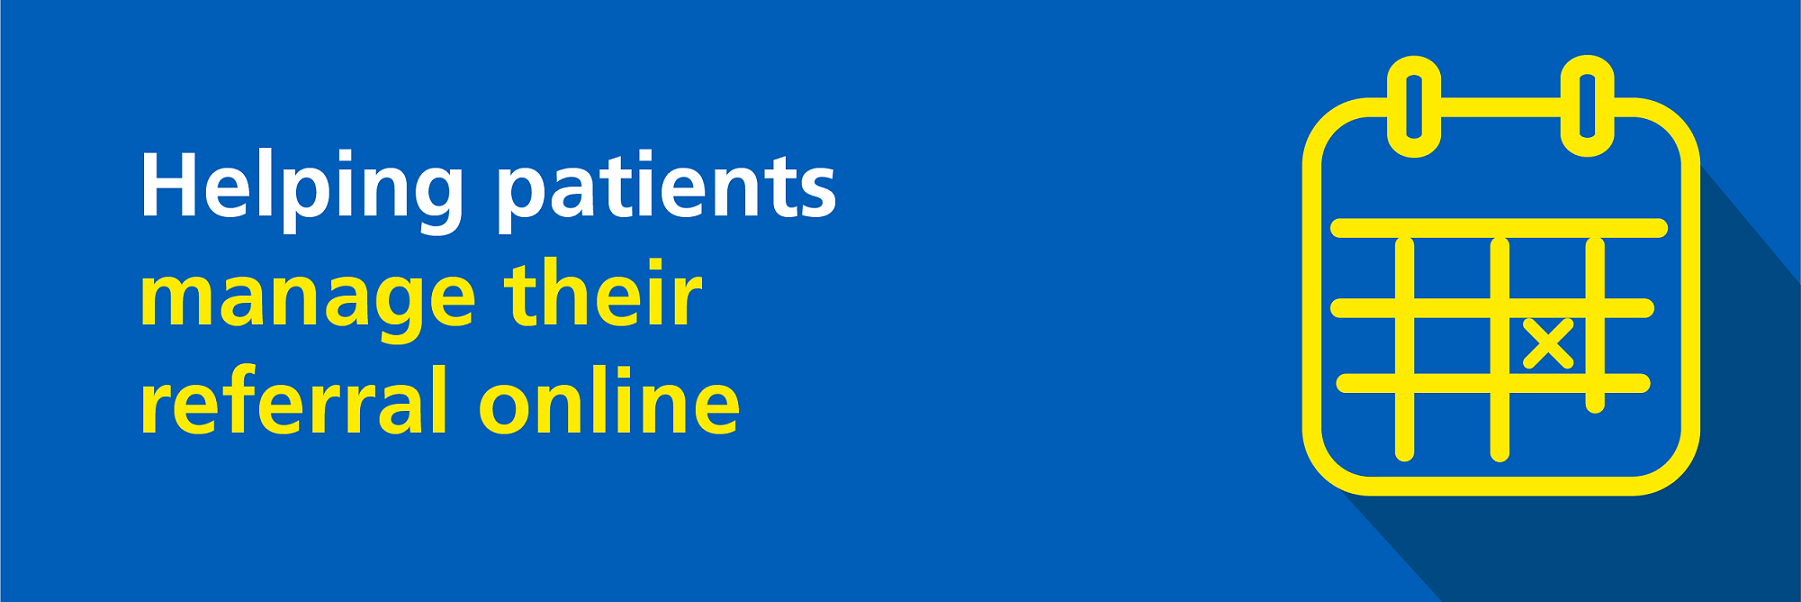 Helping patients manage their referral online